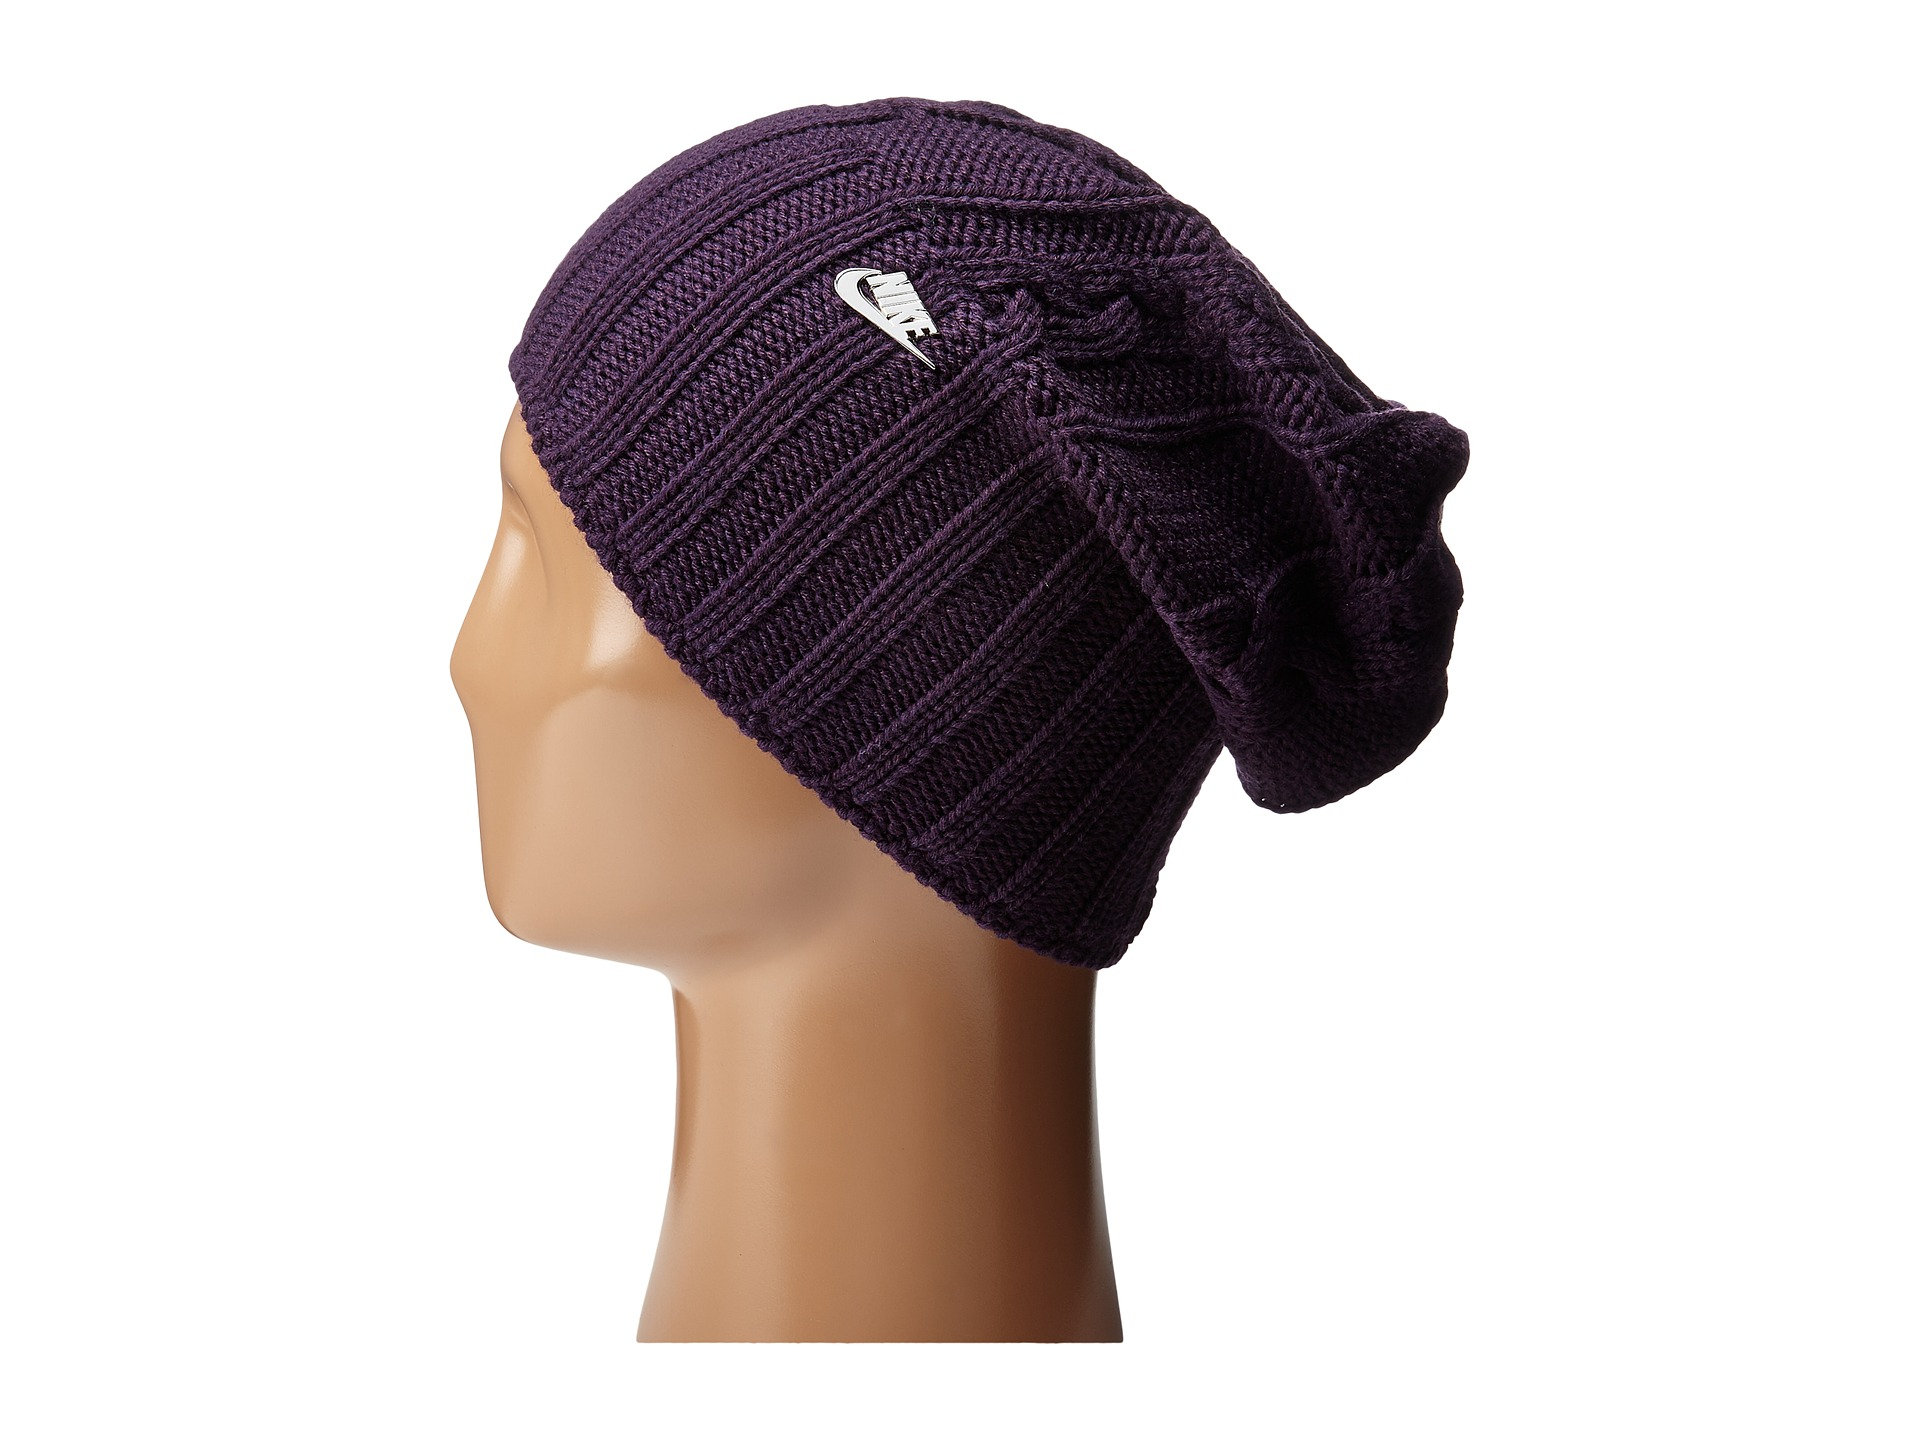 Lyst - Nike Cable Knit Beanie in Purple f9180c181b0